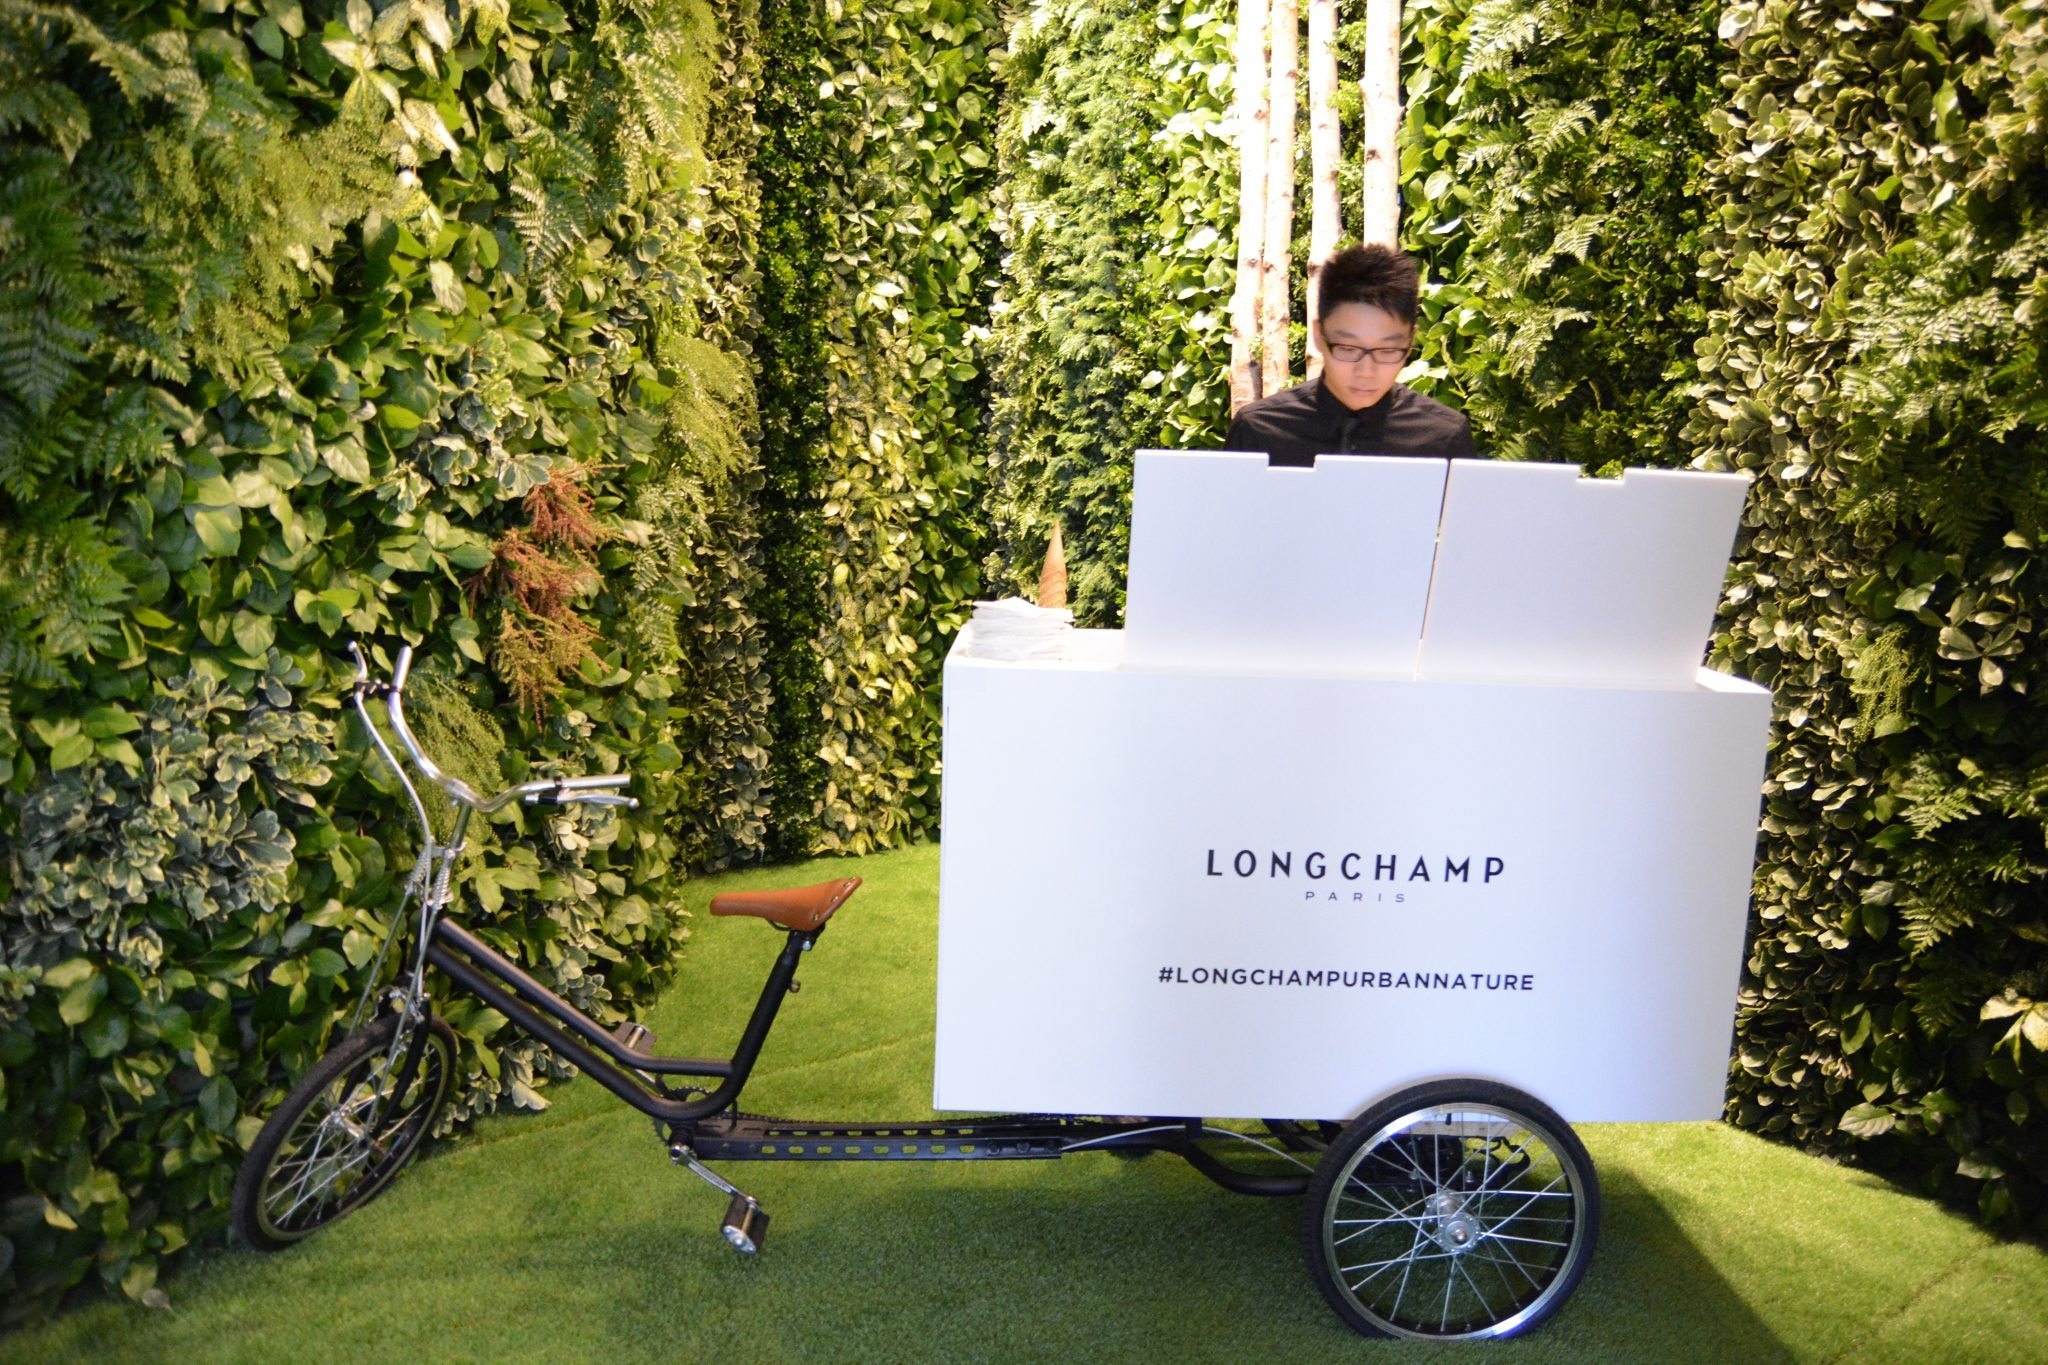 Longchamp AW16 Preview Event by BRICK LANE Catering